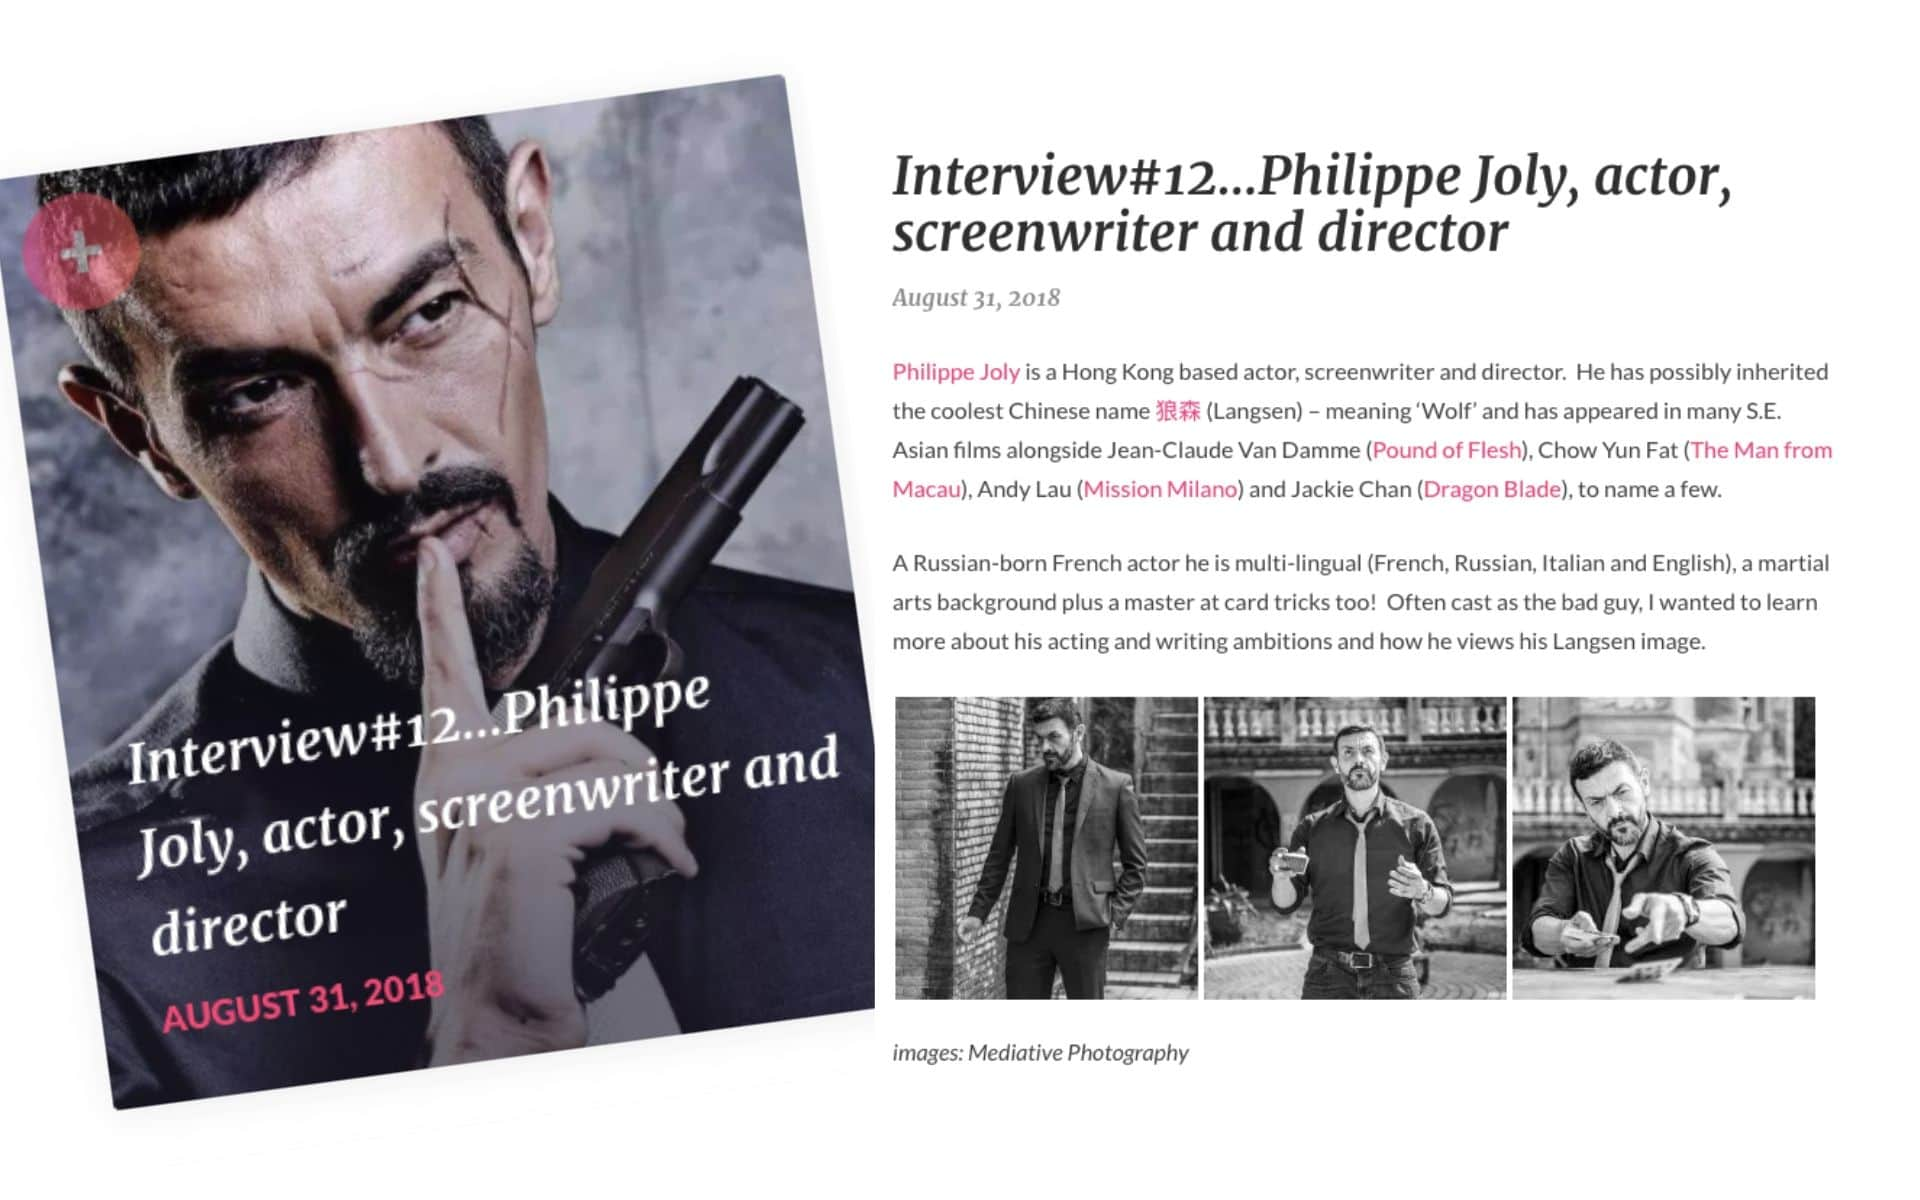 Philippe Joly - Interview in The Mighty Dragon blog